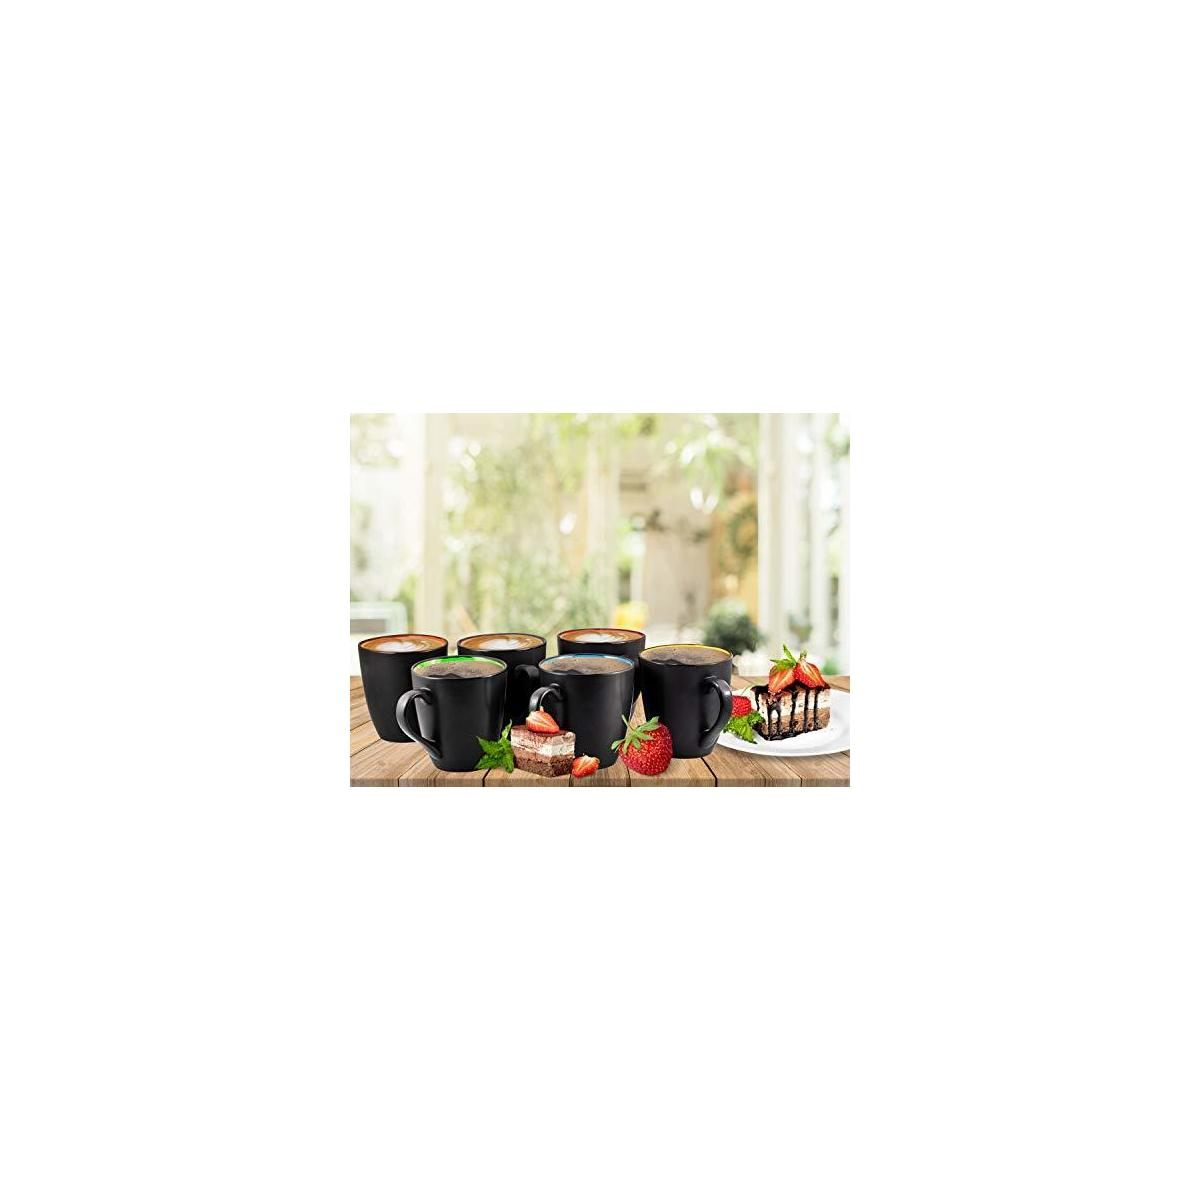 Coffee Mug Set Set of 6 Large-sized 16 Ounce Ceramic Coffee Mugs Restaurant Coffee Mugs By Bruntmor, Matte Black